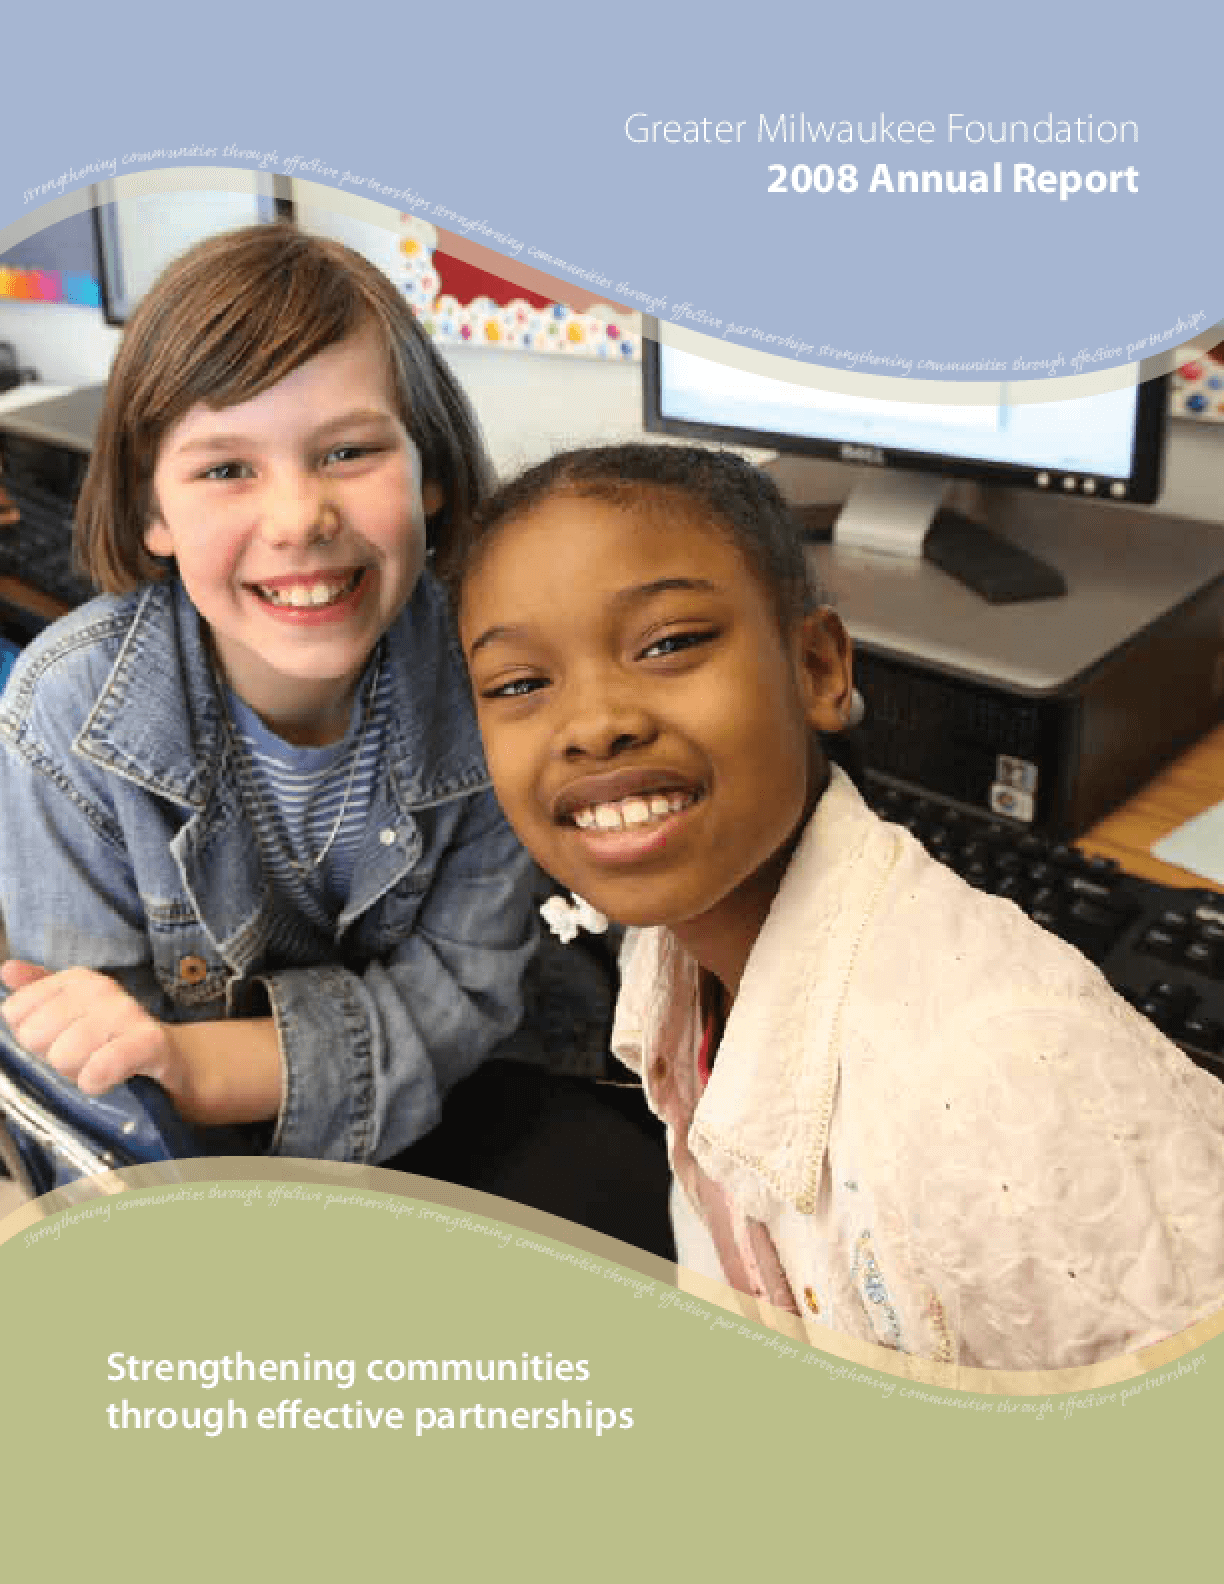 Greater Milwaukee Foundation - 2008 Annual Report